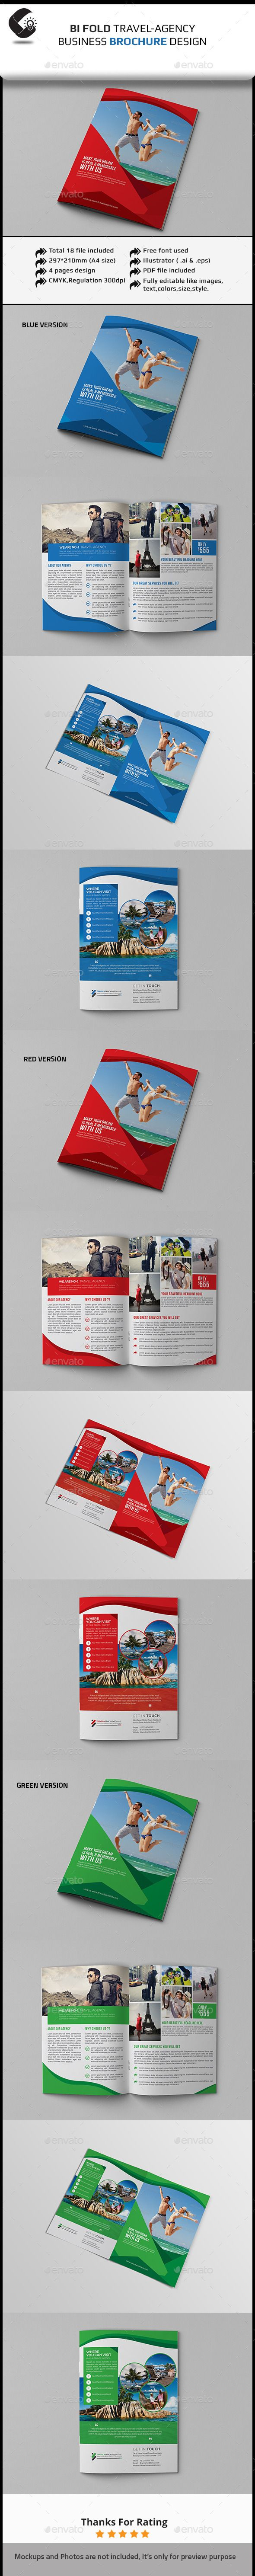 Amazing 1 Page Resume Format Free Download Thin 100 Free Resume Builder And Download Shaped 100 Free Resume Builder Online 1099 Contract Template Young 15 Year Old Resume Pink2 Circle Template Travel Agency Bifold Brochure Template | Viaggi, Agenzia Di Viaggi ..